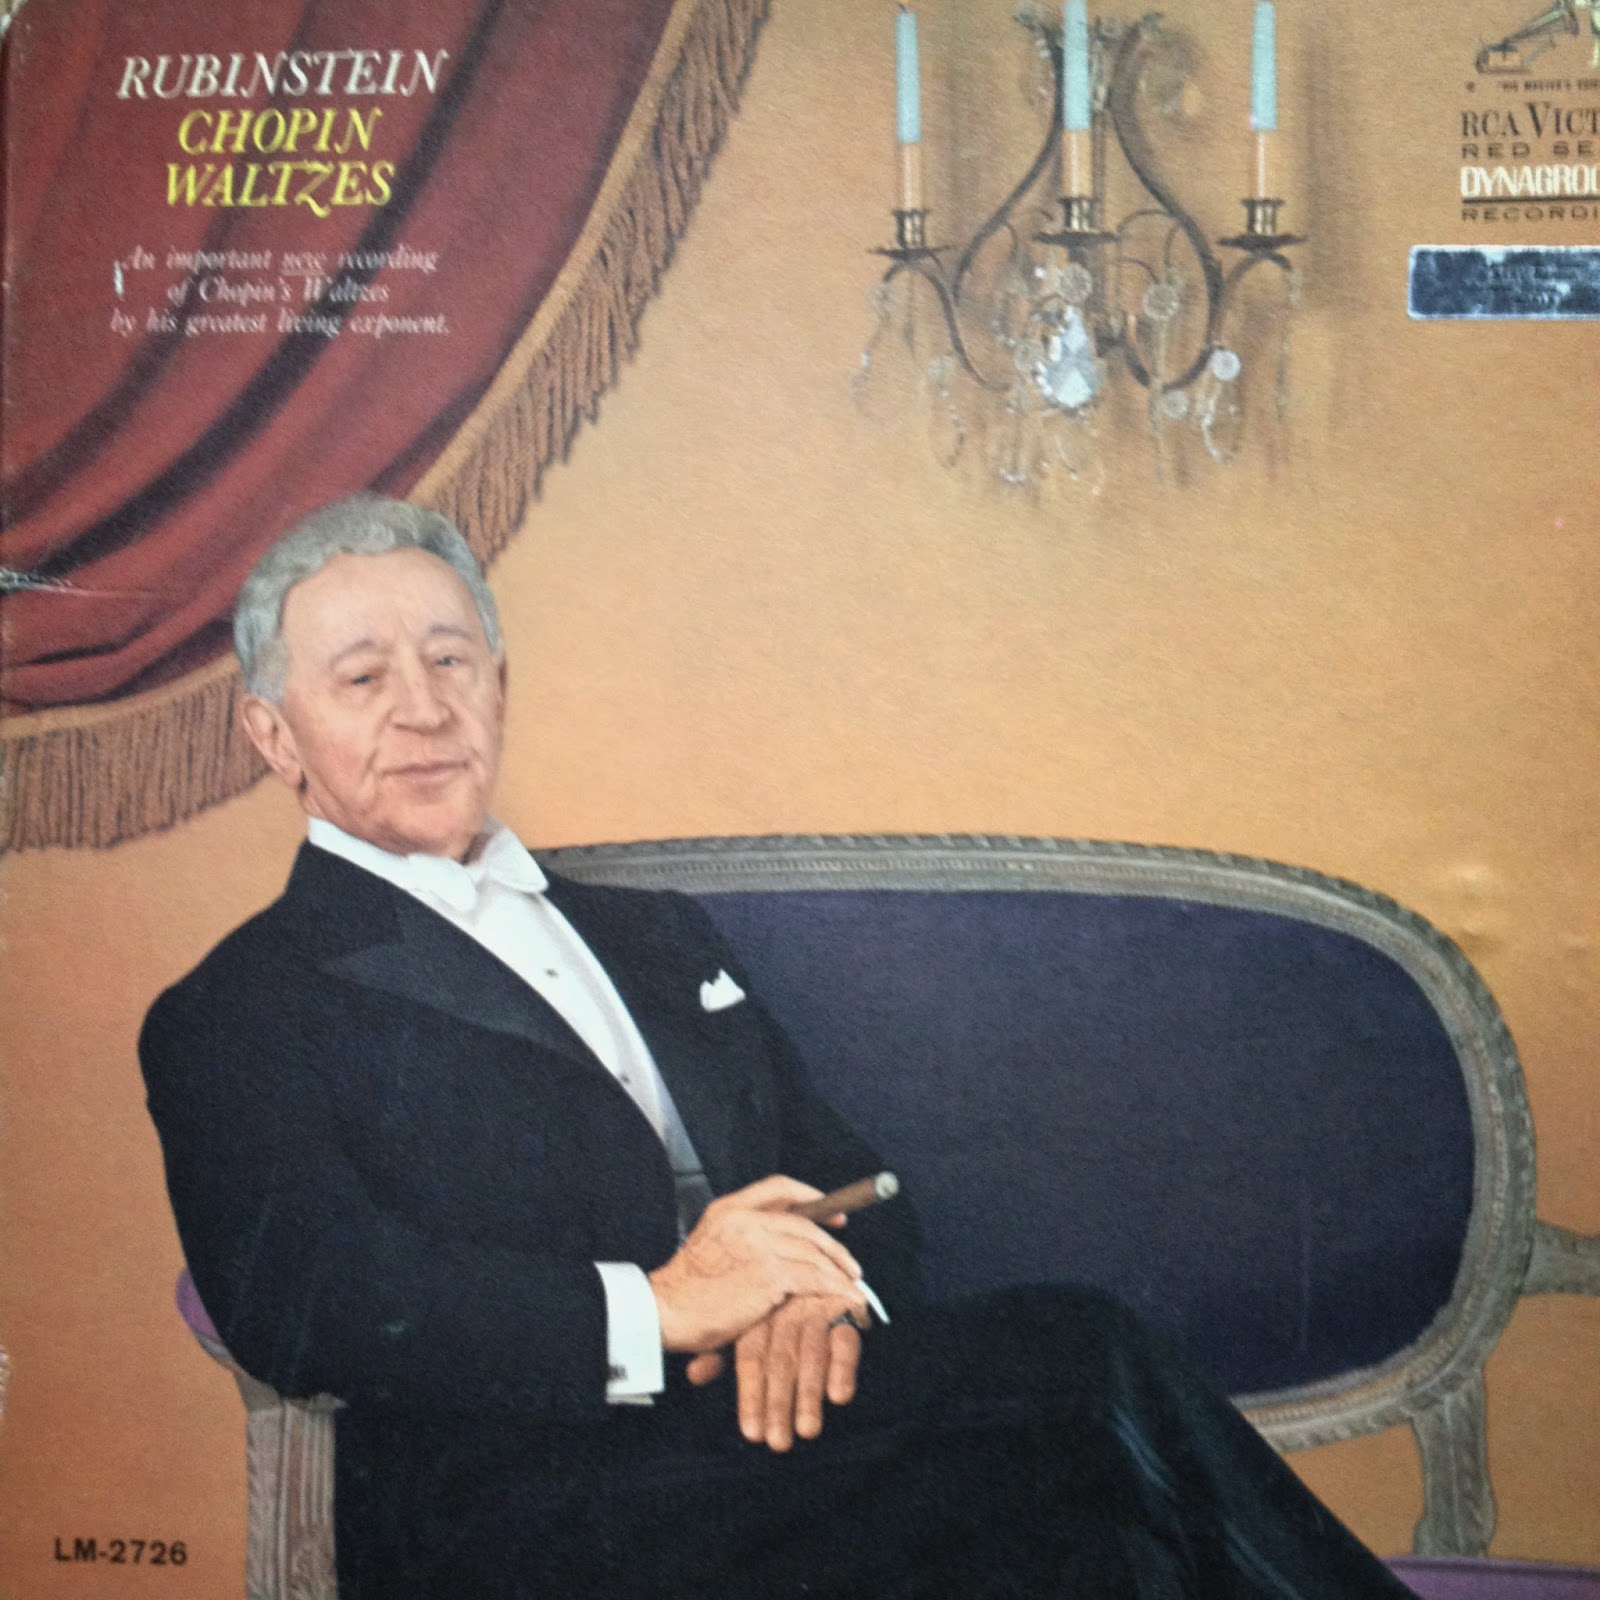 LP cover of a dapper Arthur Rubinstein, master of Chopin, relaxing with a cigar